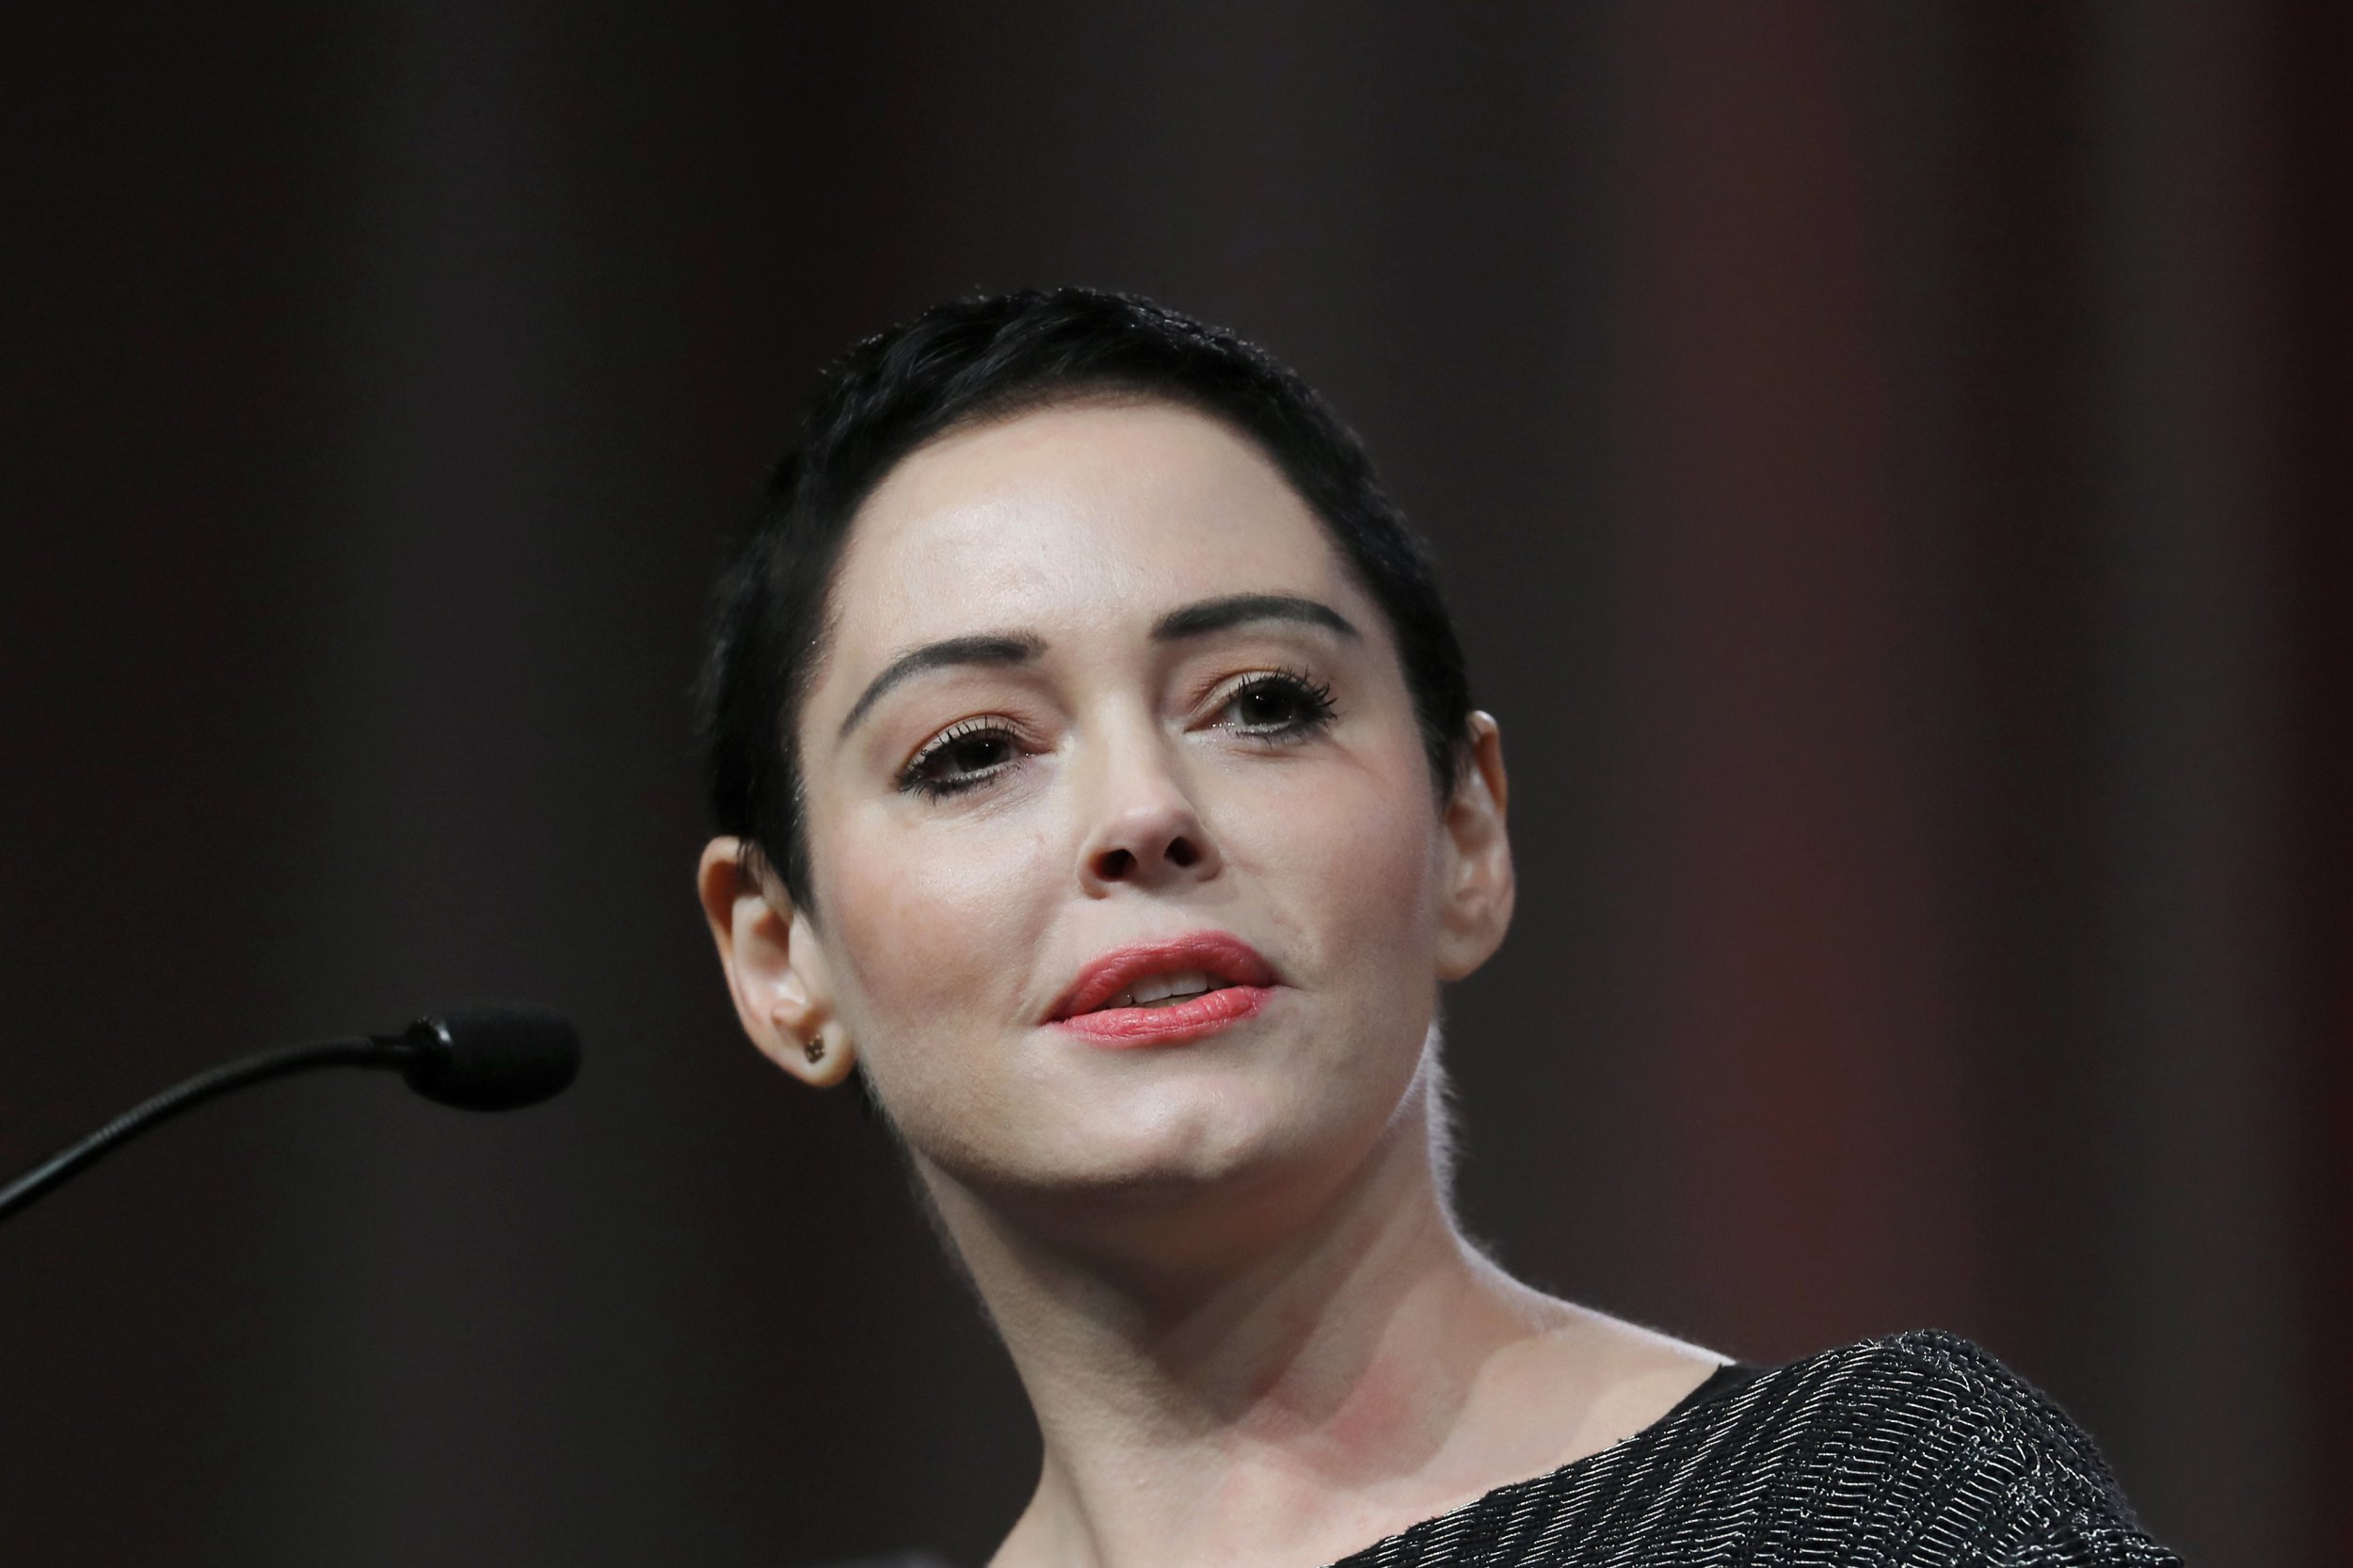 FILE- In this Oct. 27, 2017, file photo, actress Rose McGowan speaks at the inaugural Women's Convention in Detroit. A judge is scheduled to hear evidence on whether a drug possession charge in Virginia against McGowan should go forward. McGowan is seeking to have the charges against her dismissed. She has suggested the drugs may have been planted by agents hired by disgraced Hollywood producer Harvey Weinstein. (AP Photo/Paul Sancya, File)